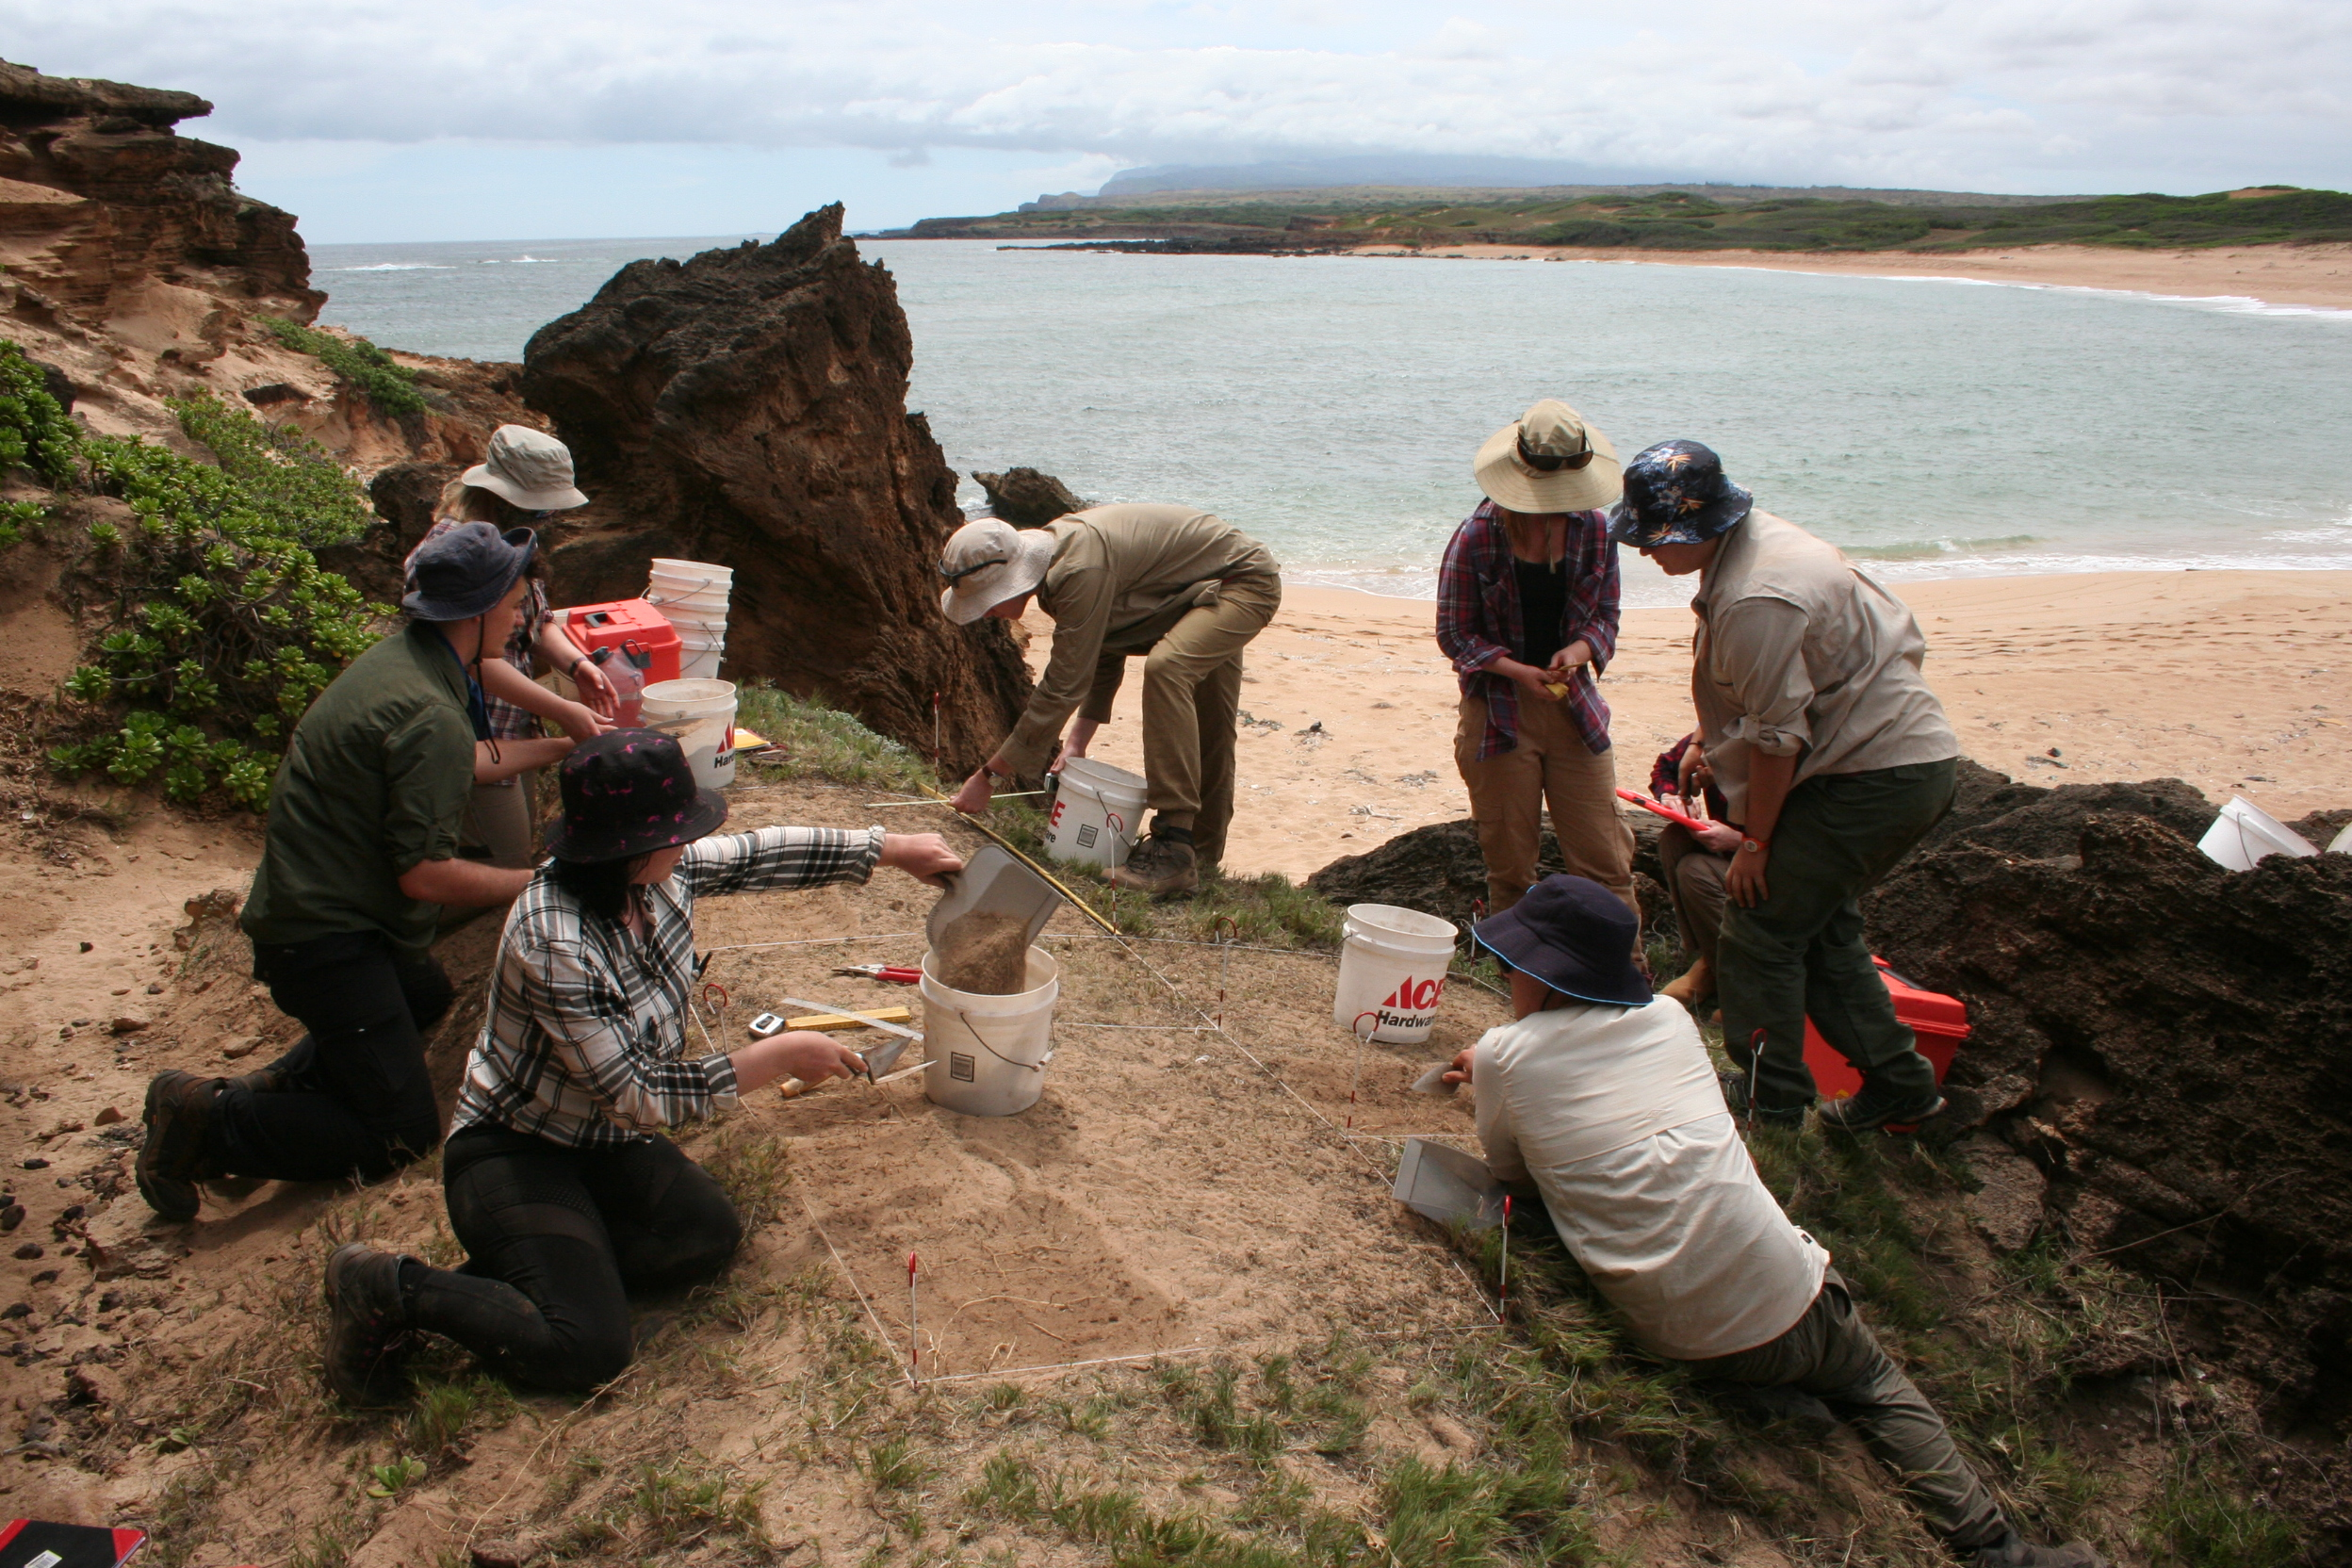 UQ students excavating an ancient site just above a pristine beach along the rugged, windward coast of Moloka'i, Hawaiian Islands.